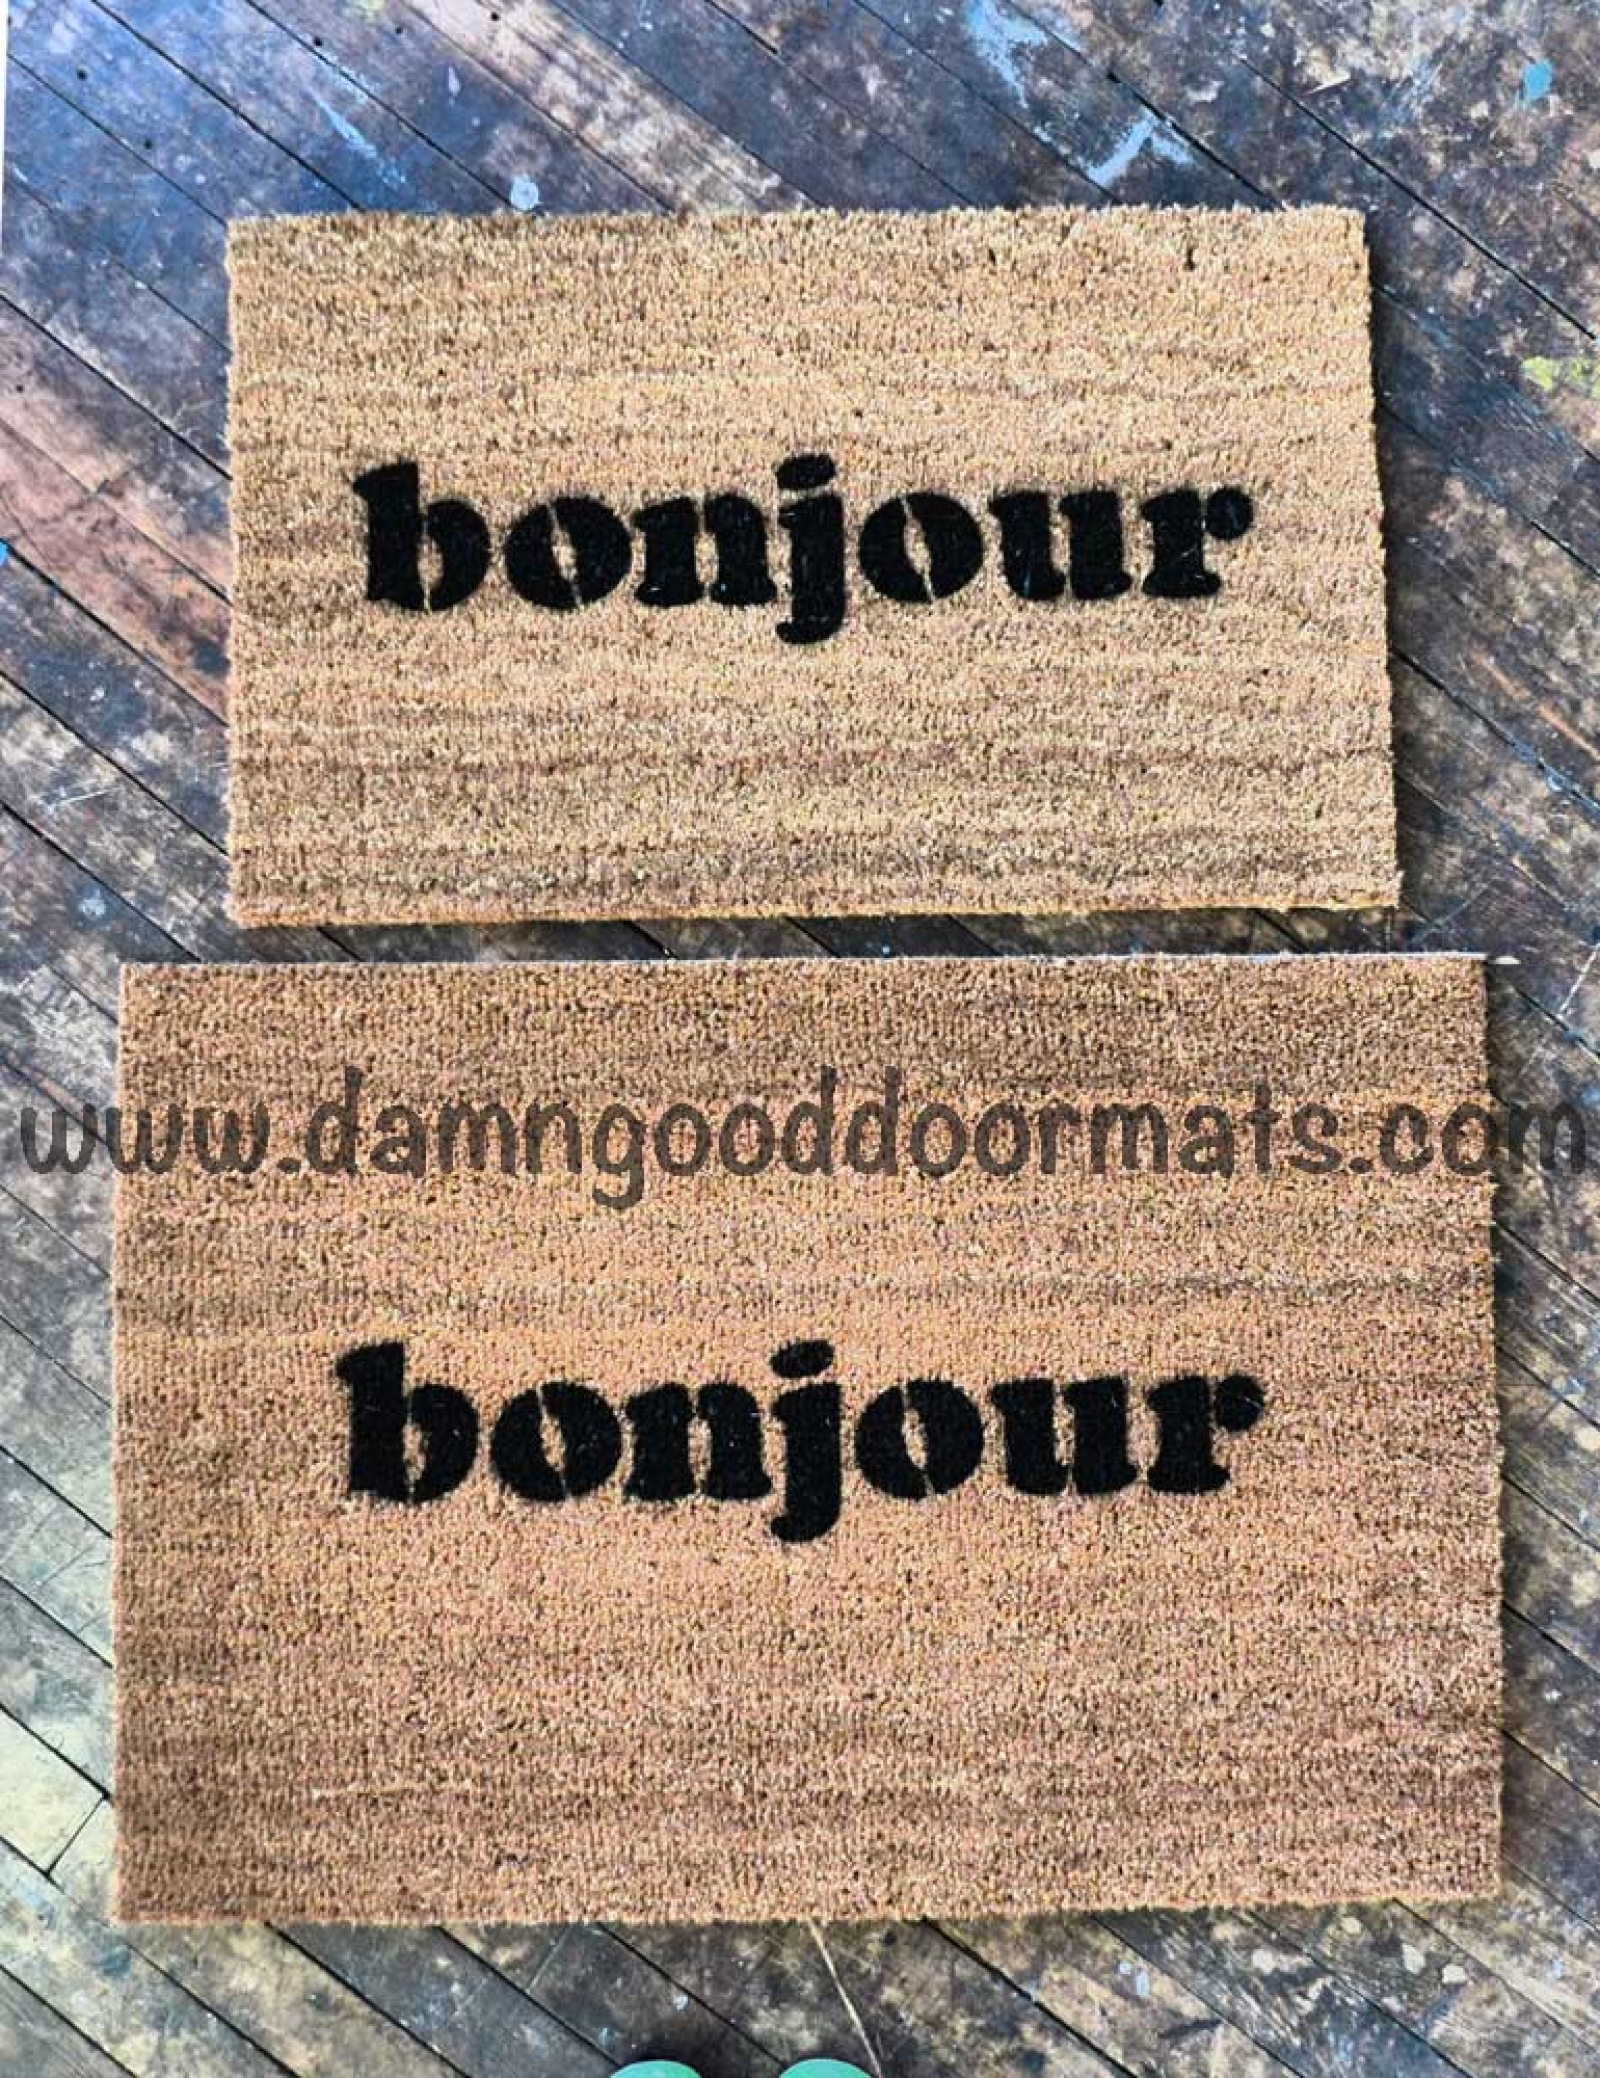 Bonjour French Good Day Doormat By Damn Good Doormats